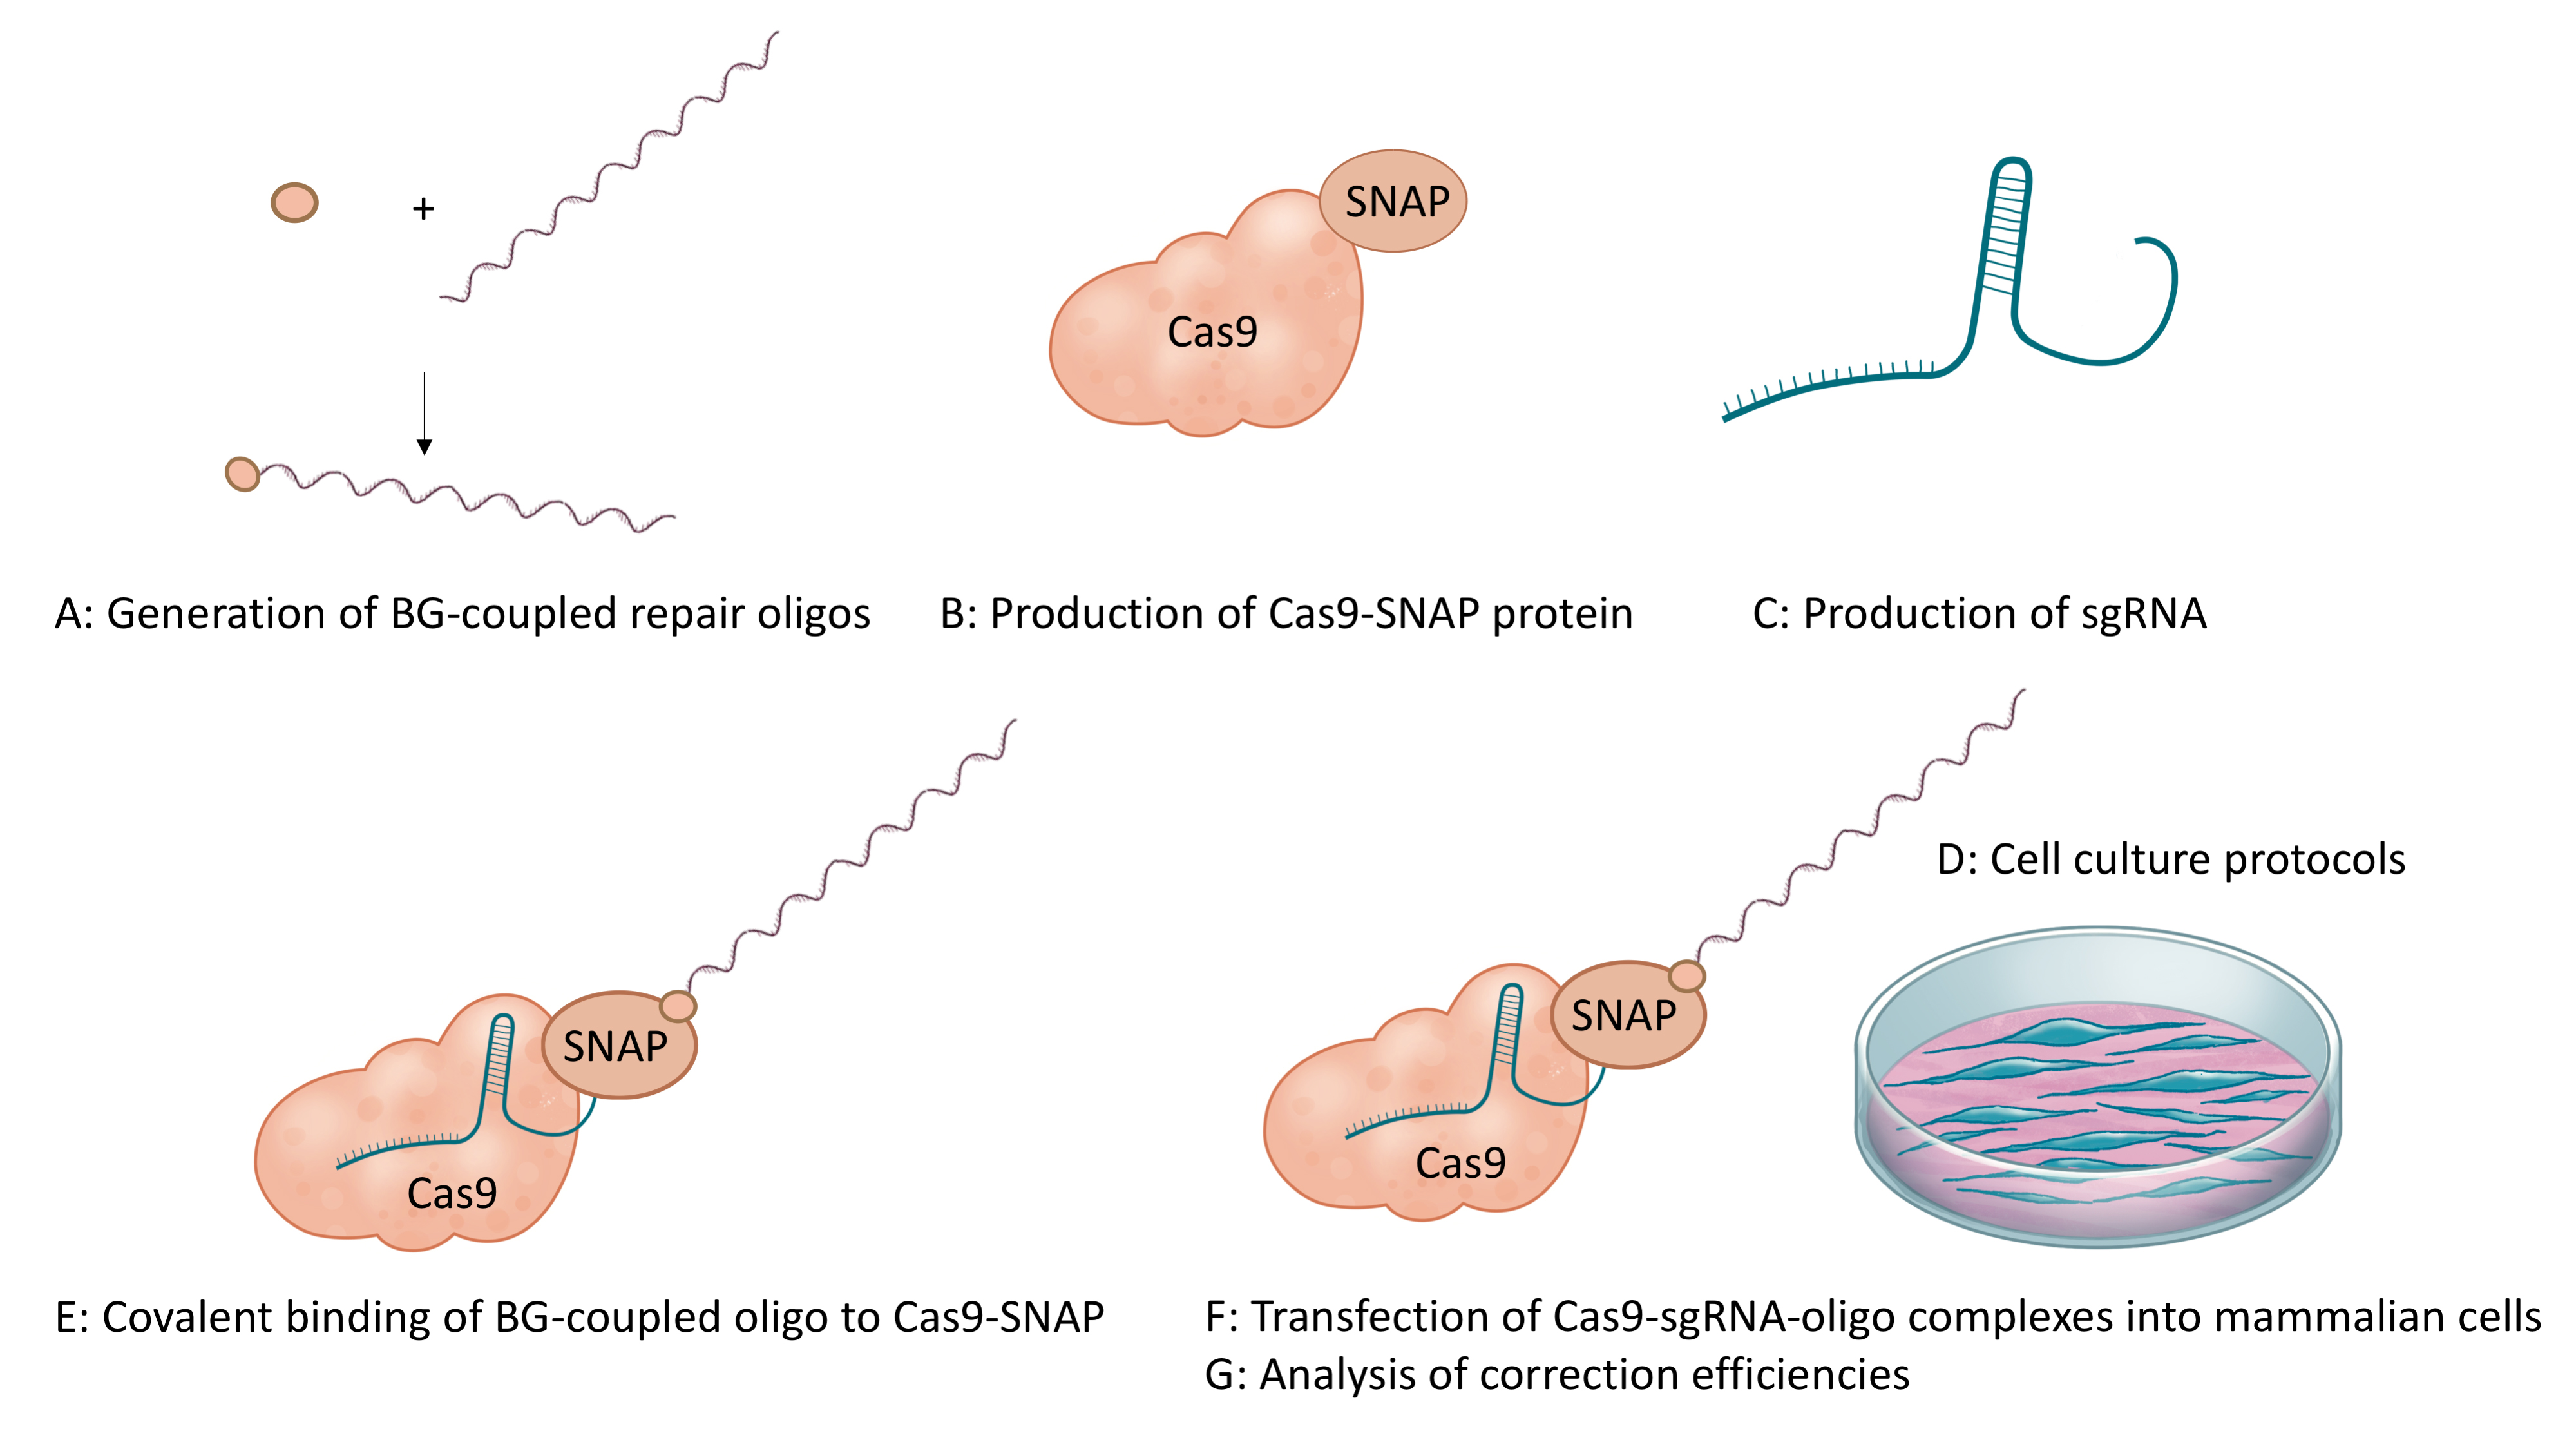 In vitro Generation of CRISPR-Cas9 Complexes with